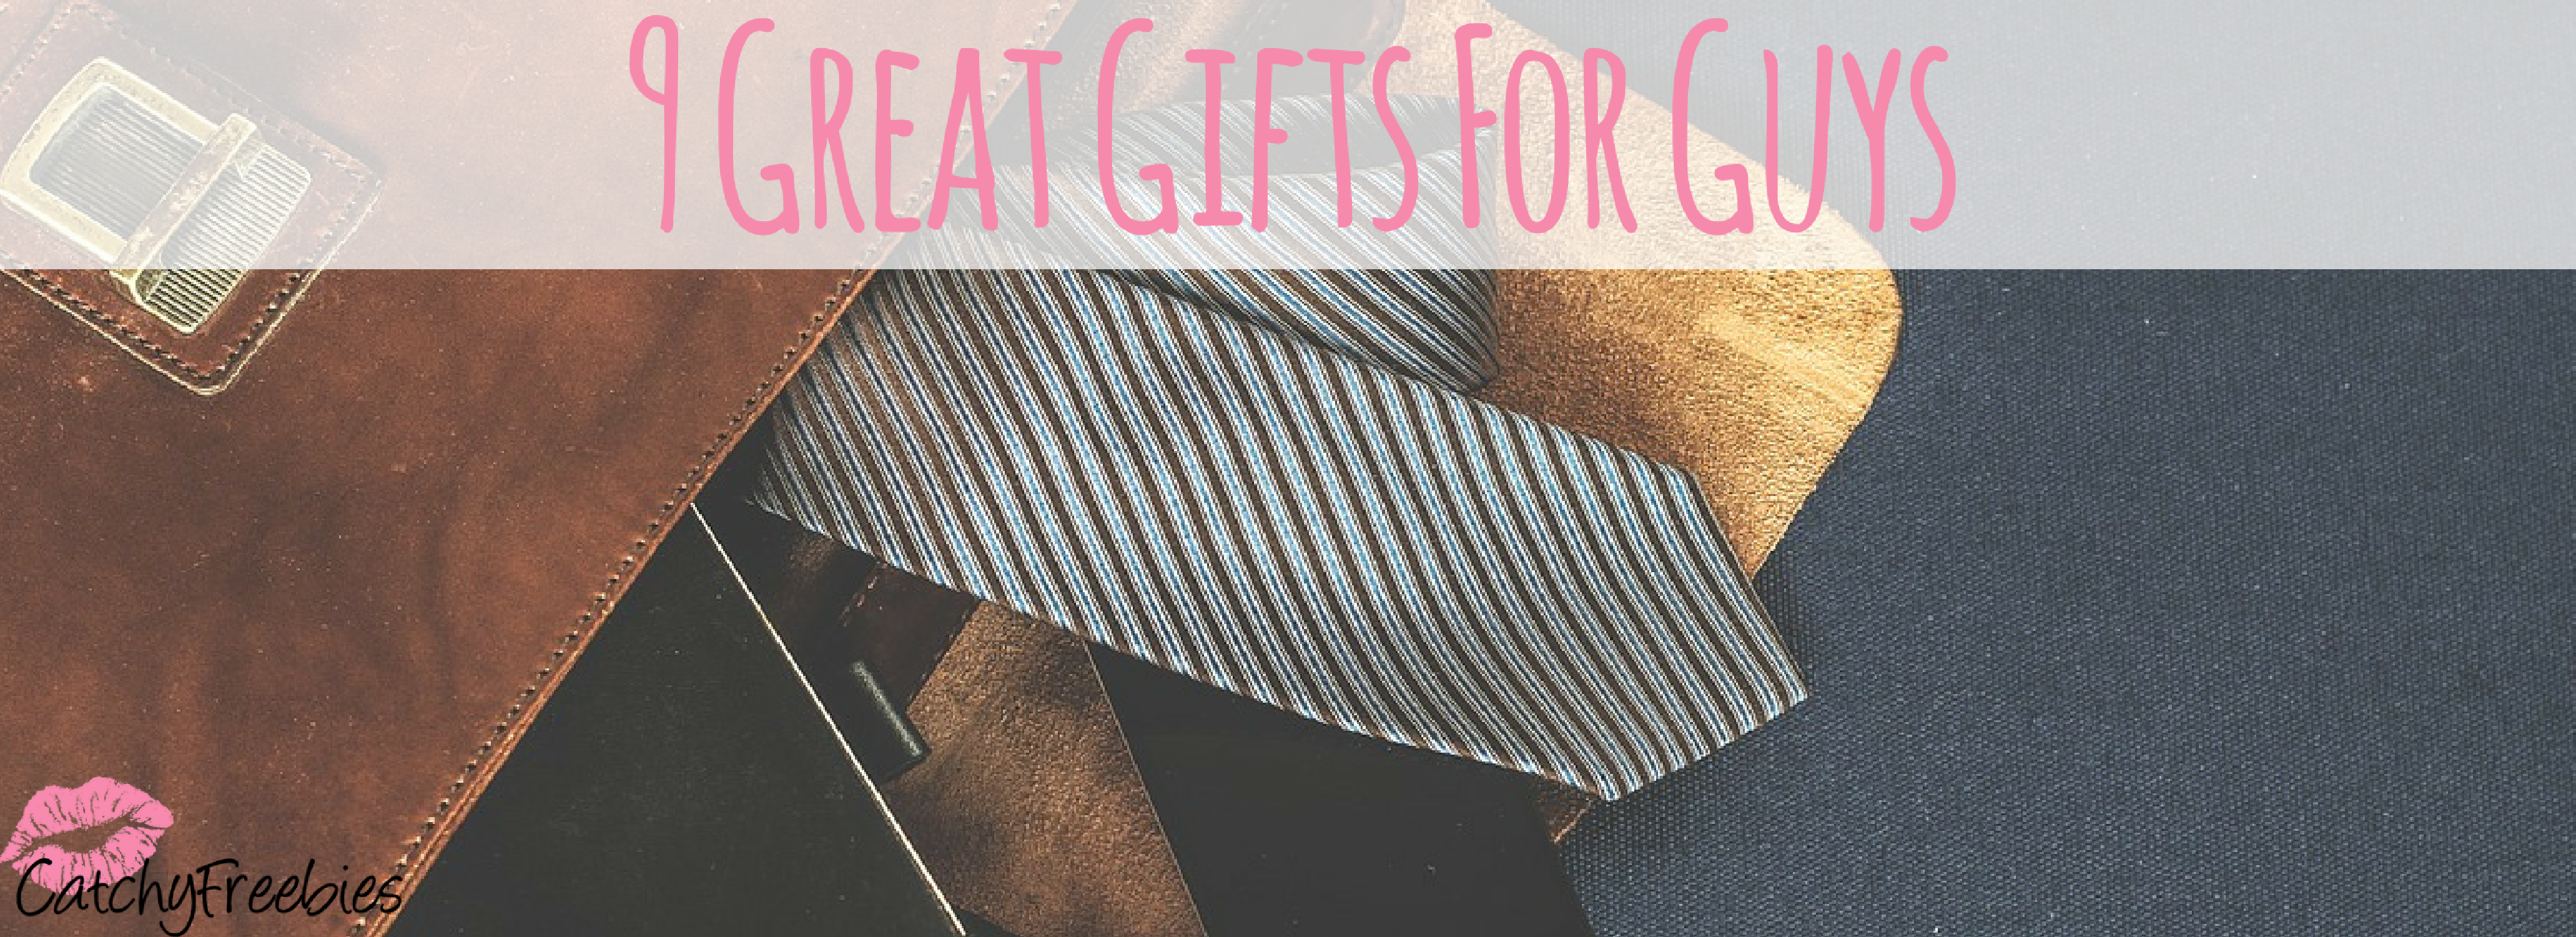 9 Great Gifts For Guys